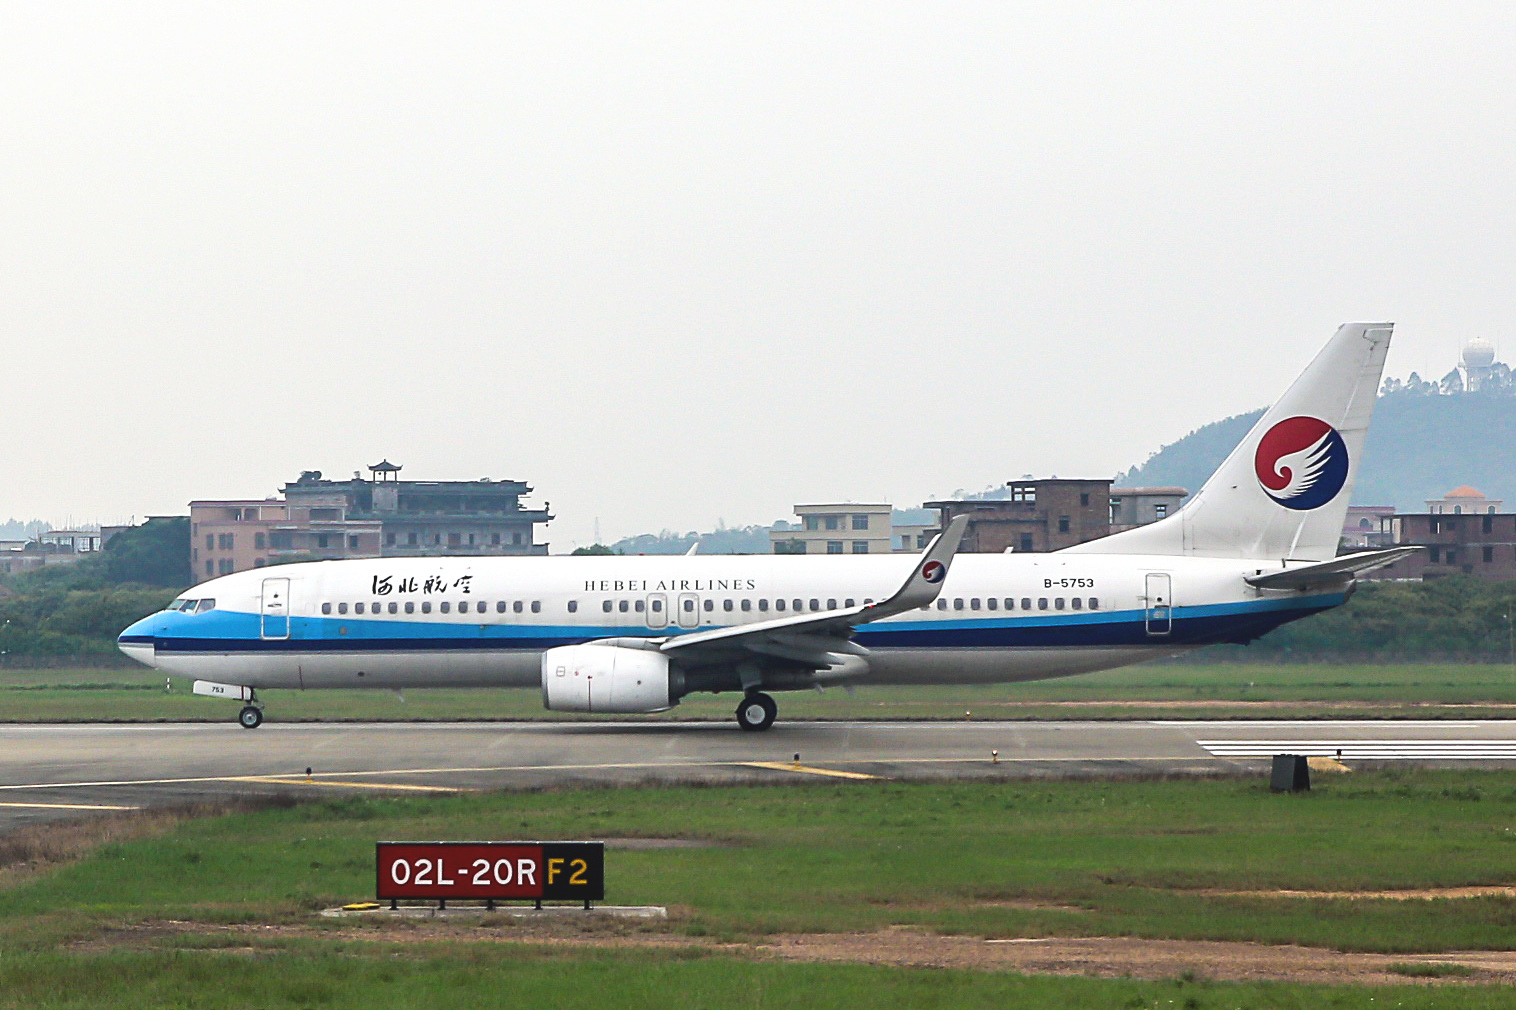 Боинг-737-800 B-5753 авиакомпании Hebei Airlines в аэропорту Гуанчжоу